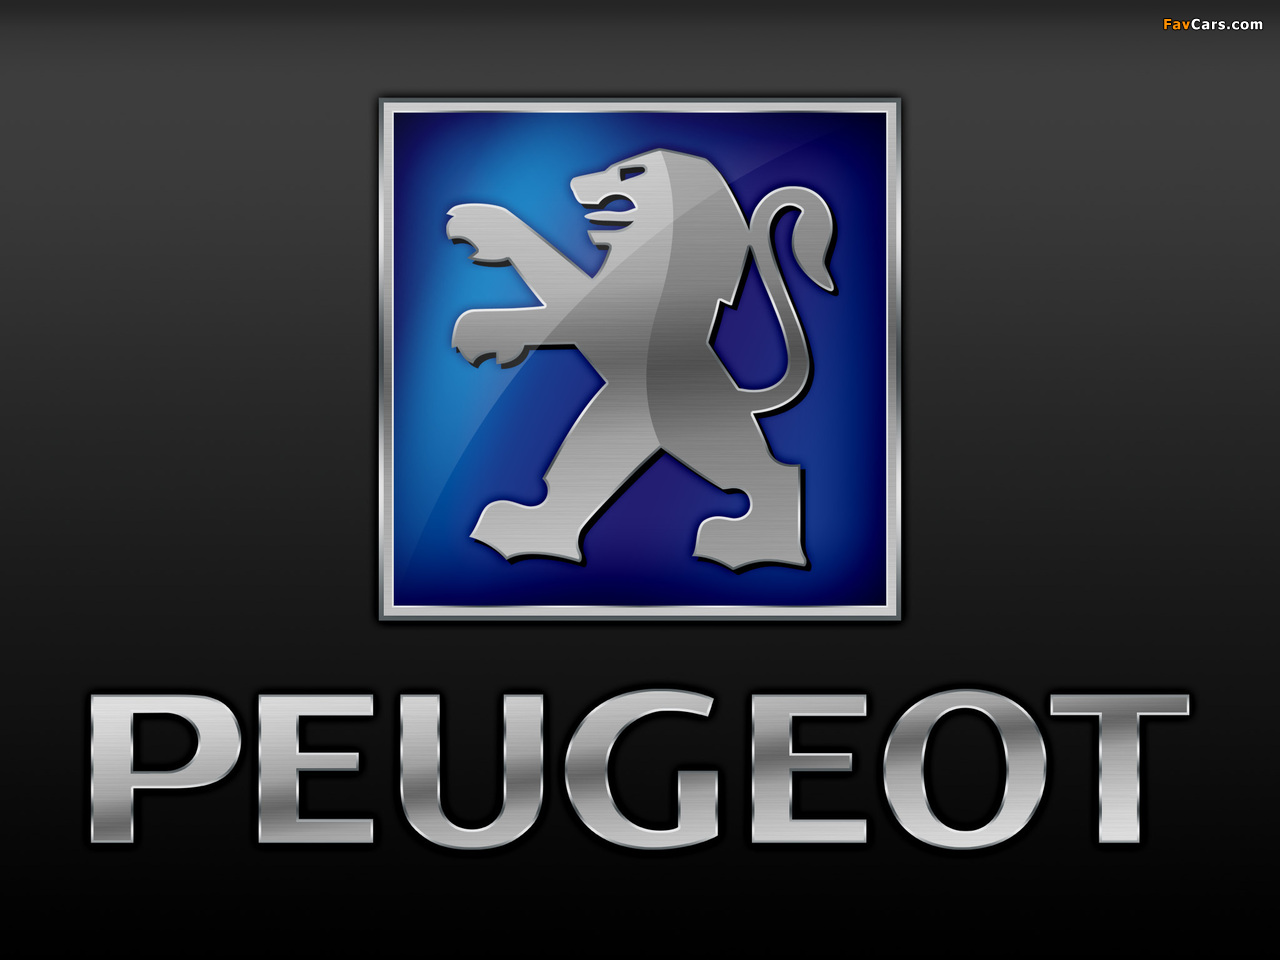 Peugeot wallpapers (1280 x 960)